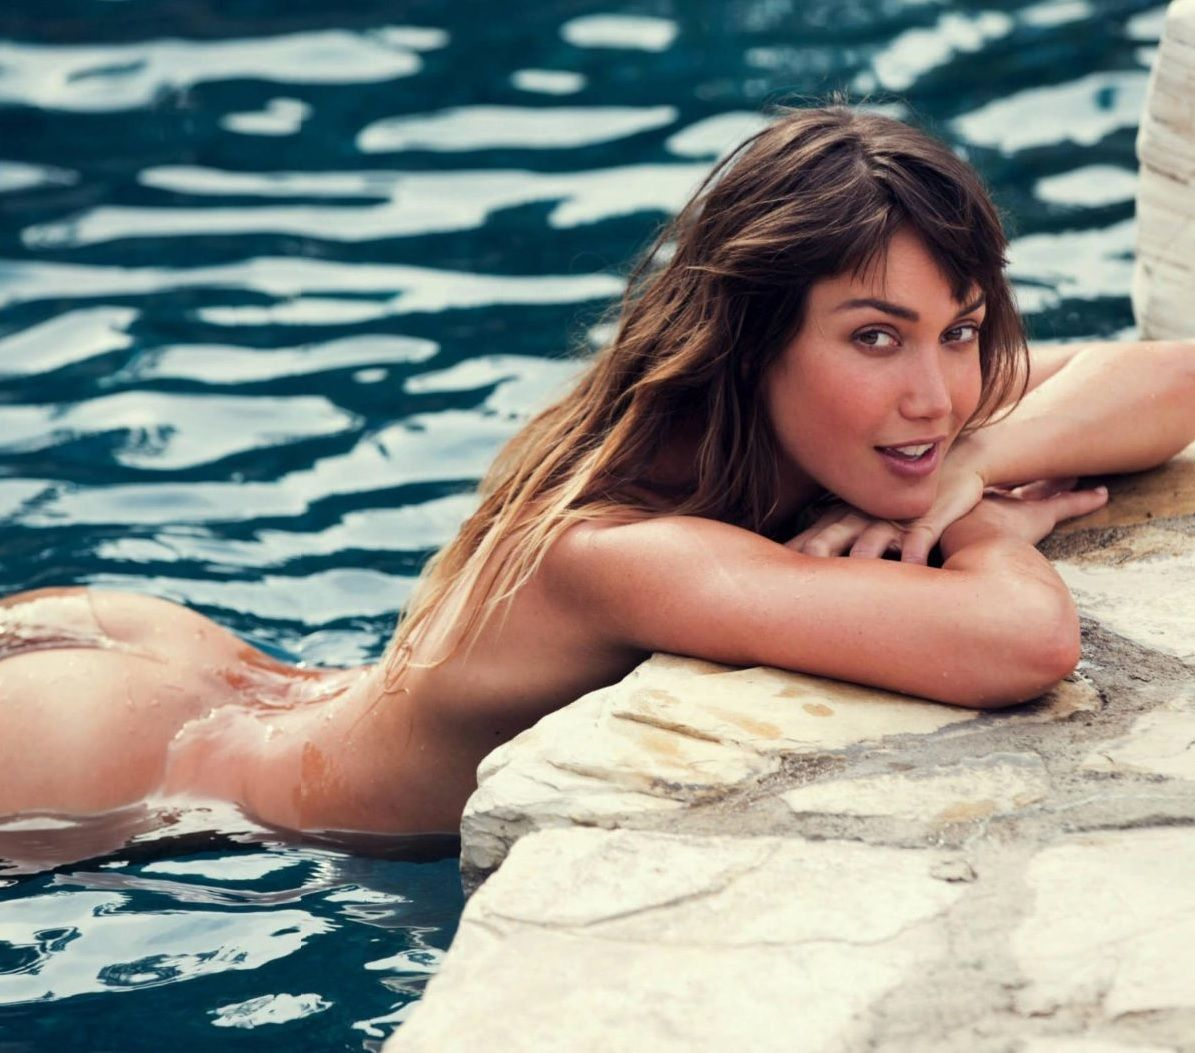 brook power,nude,david bellemere,swimming pool